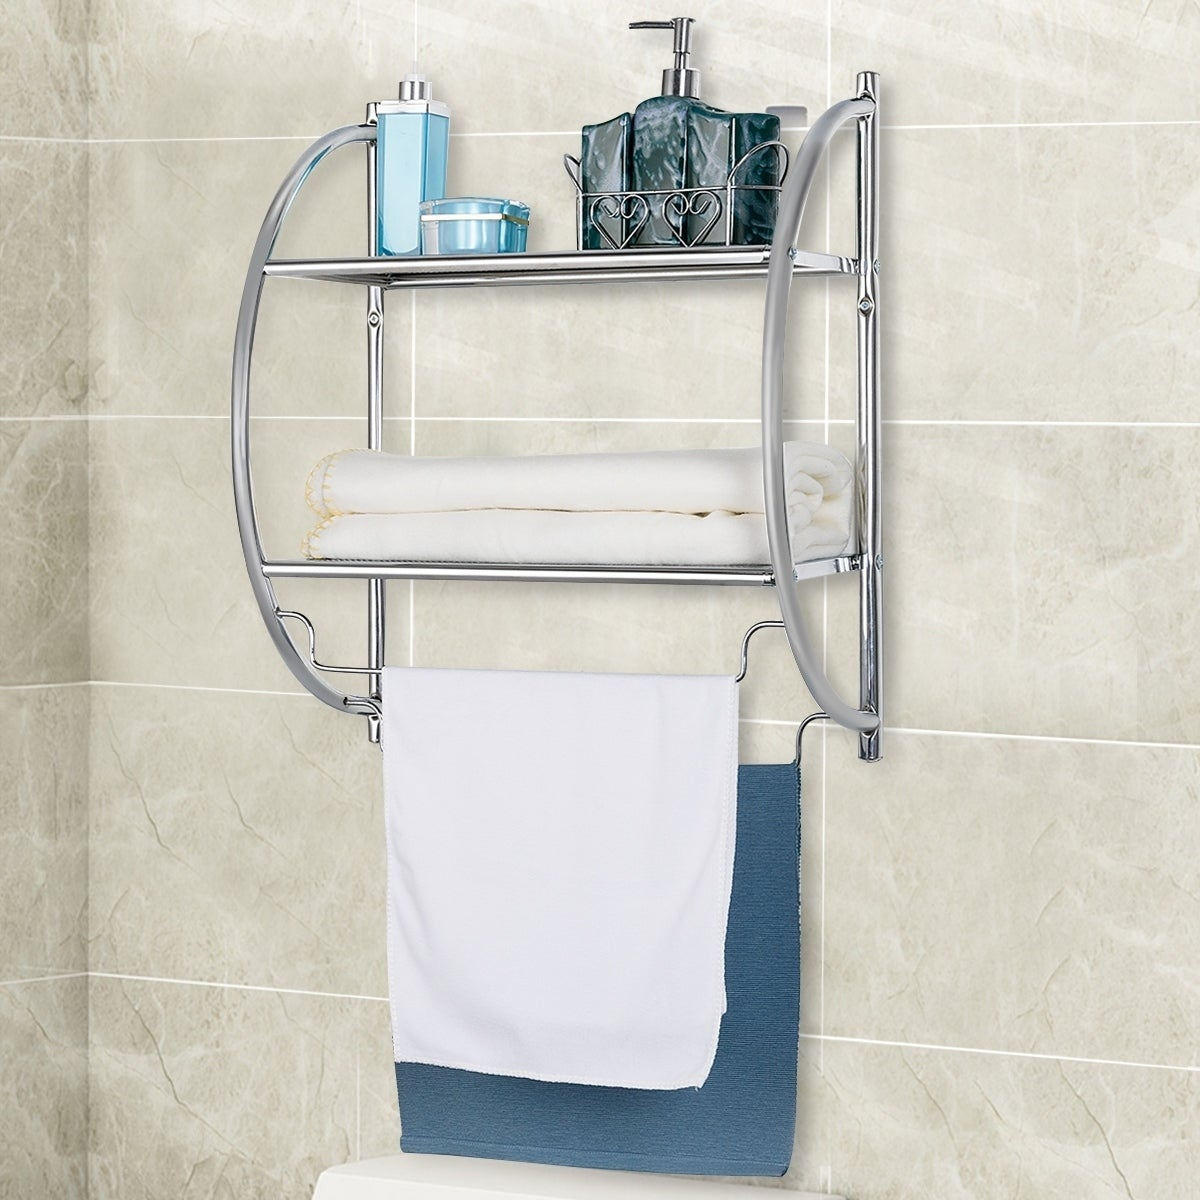 Wall Mounted Towel Rack Shower Suppliers Storage Holder Bathroom Overstock 30570112